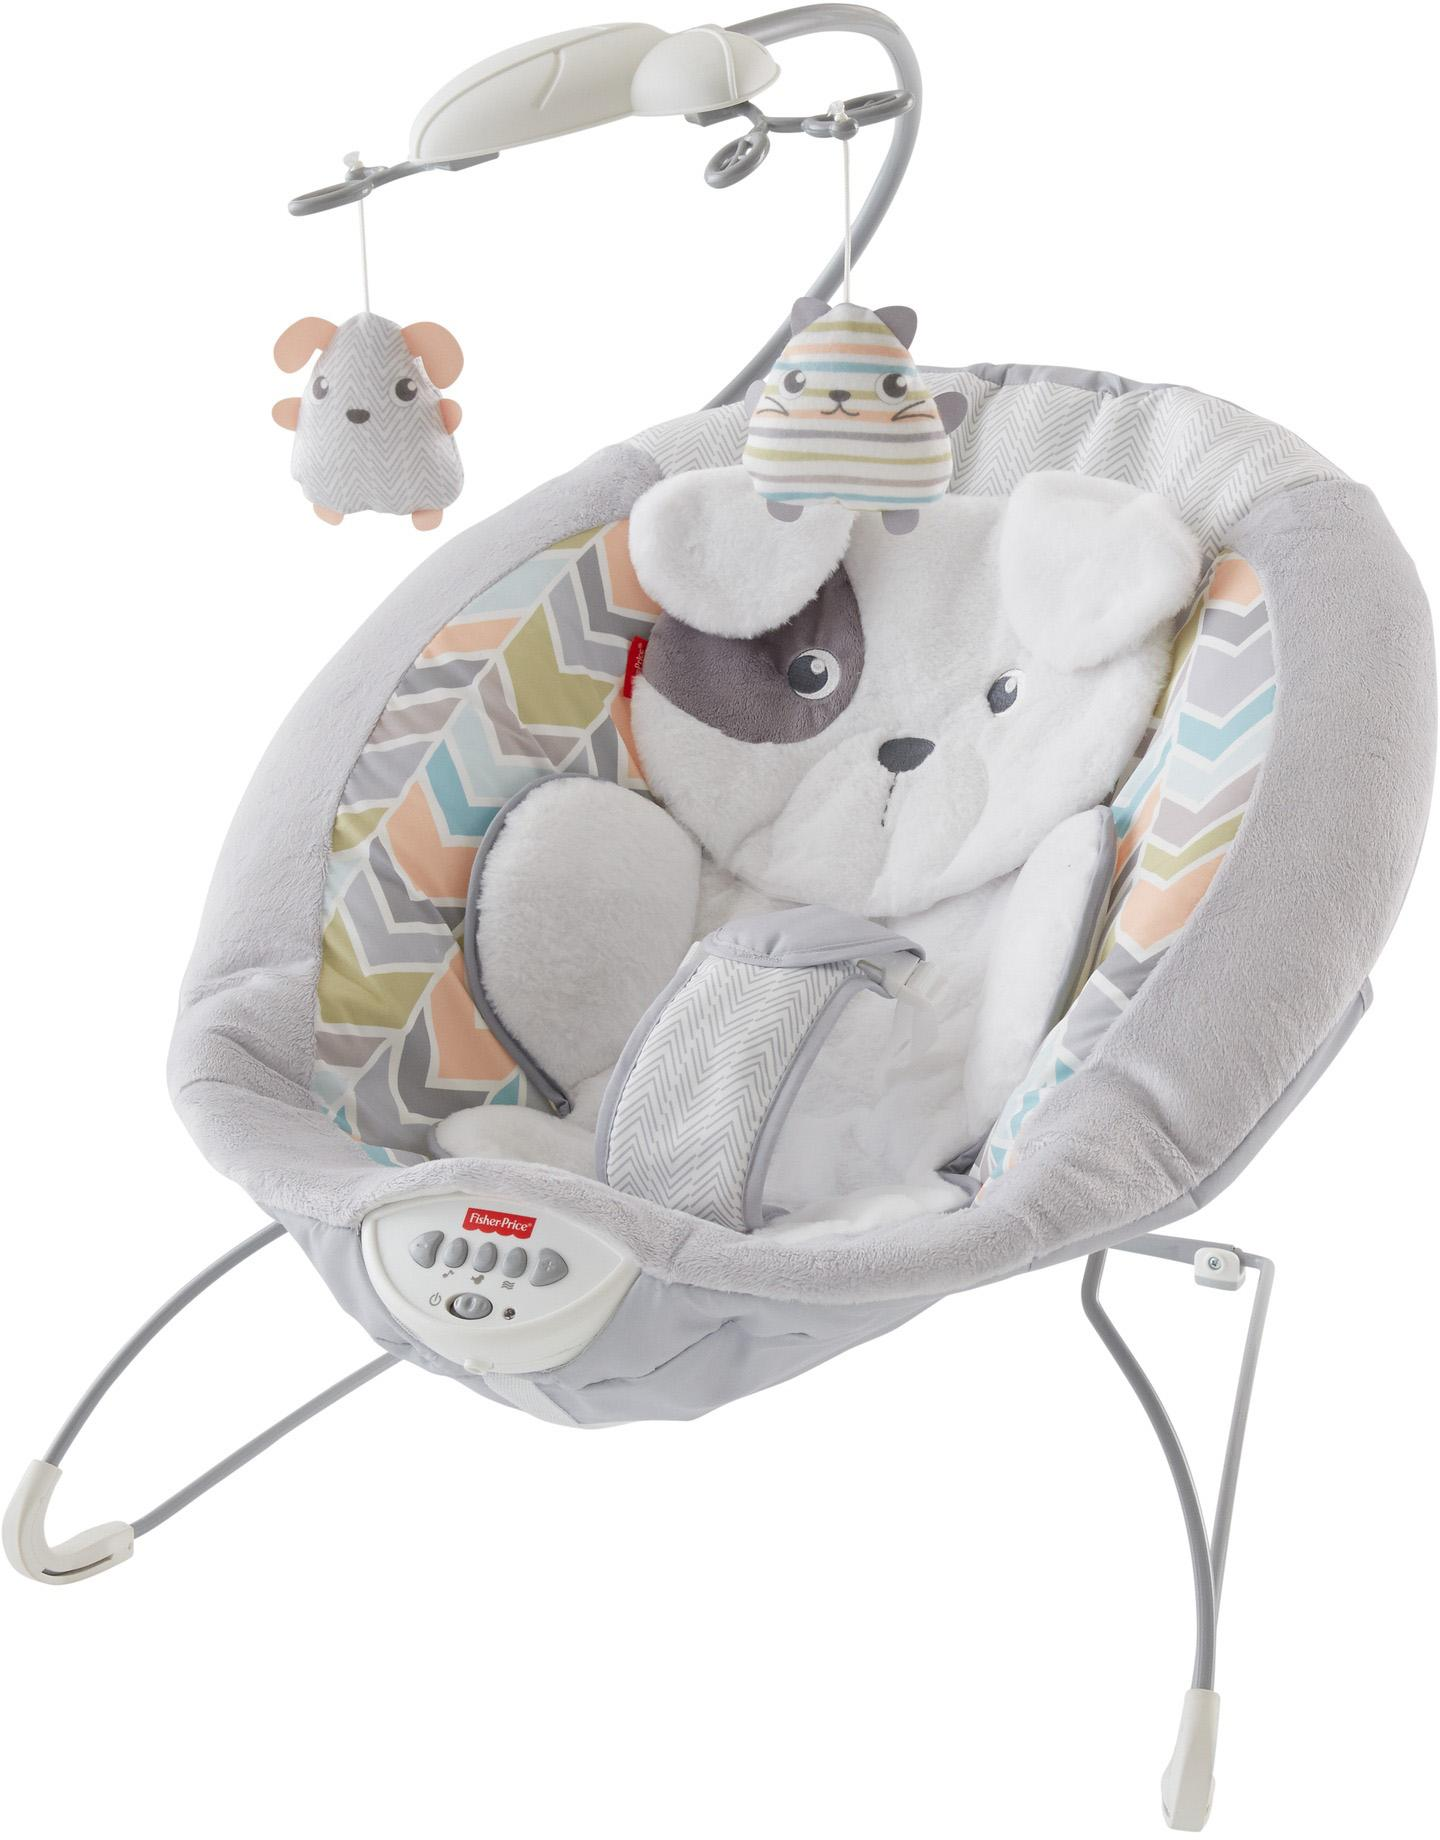 Amazon.com : Fisher-Price My Little Snugapuppy Deluxe Bouncer, White : Baby